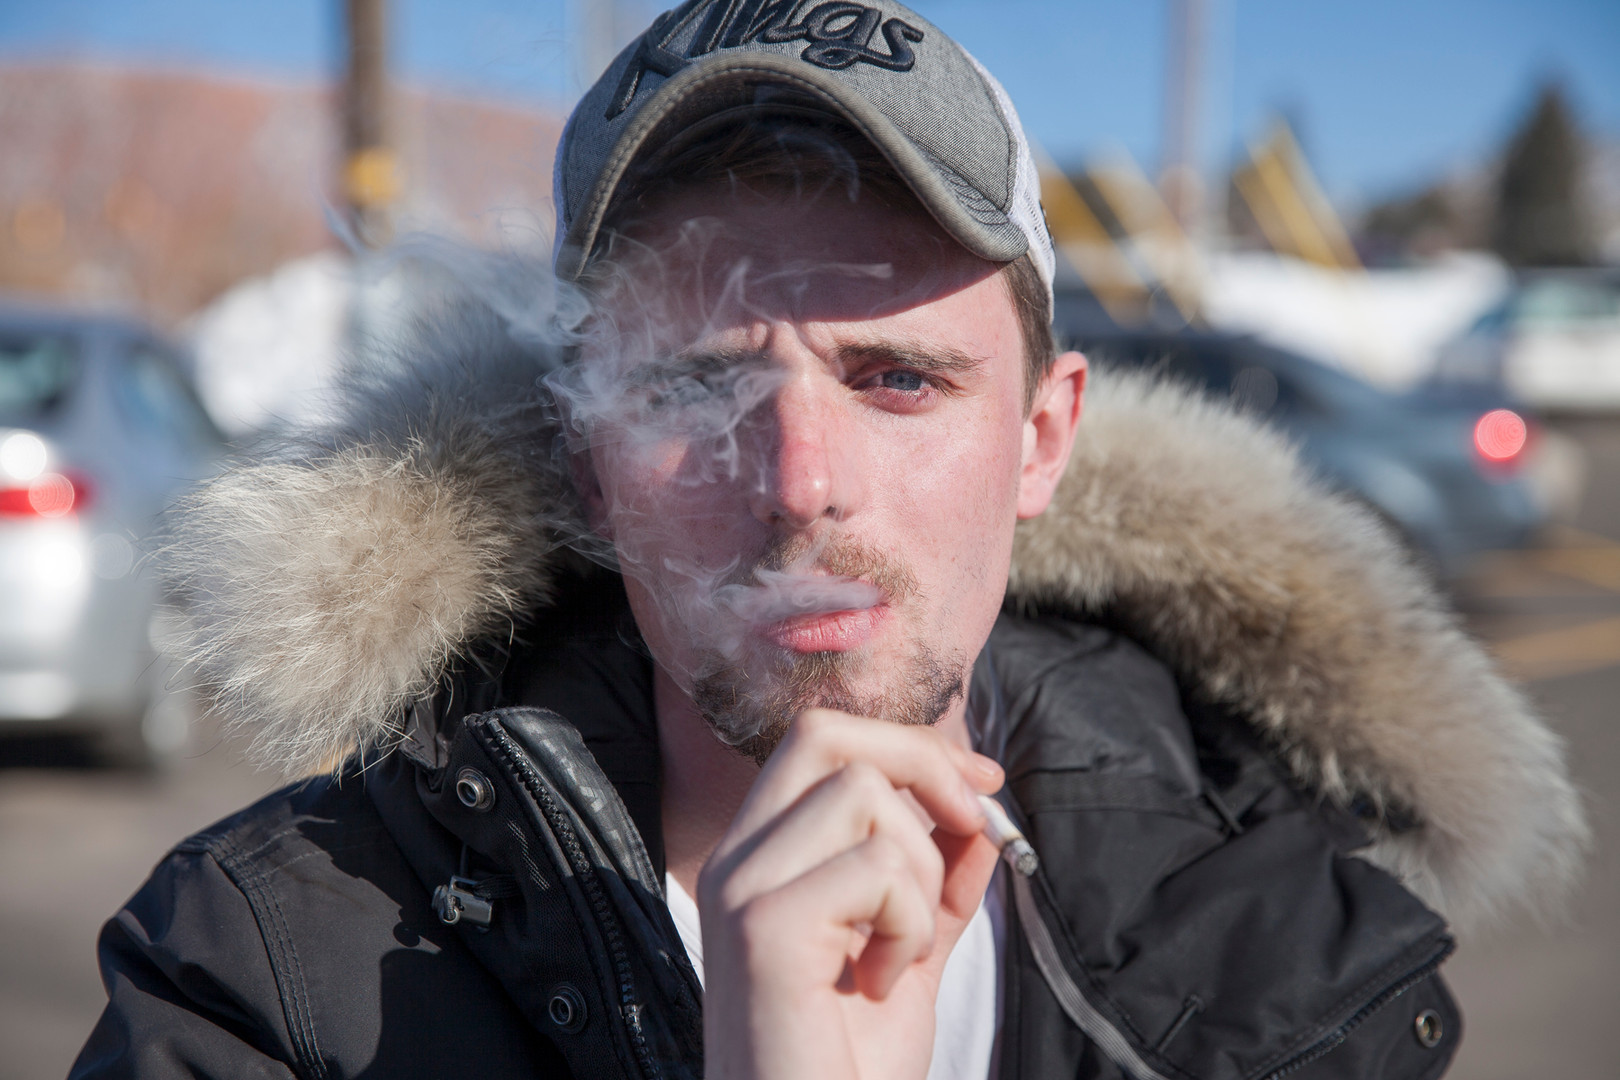 French student Geoffrey Abadie posing for a portrait while smoking a cigarette. Live in Utah is sometimes a challenge for most of the international community. The Utahan culture is highly influenced by the Mormon Church, which makes the state have strong restrictions to alcohol, tobacco, drugs, and other aspects of the social like that in many other American cities represent a normal curiosity for students. © February 2016